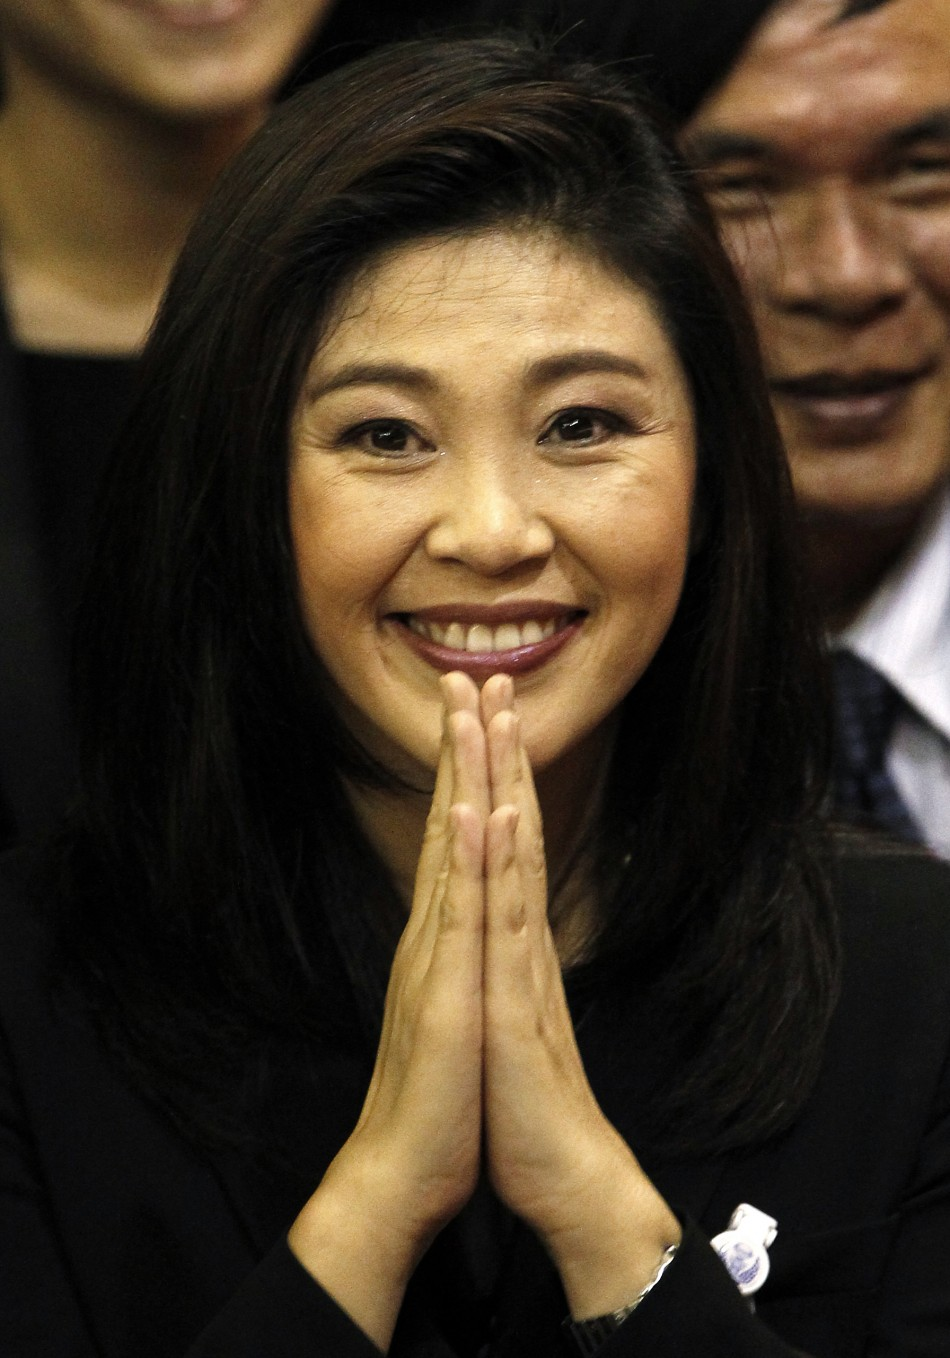 Thailand's new PM Shinawatra of the Puea Thai Party gestures to members of parliament moments after being elected as the country's 28th prime minister in Bangkok